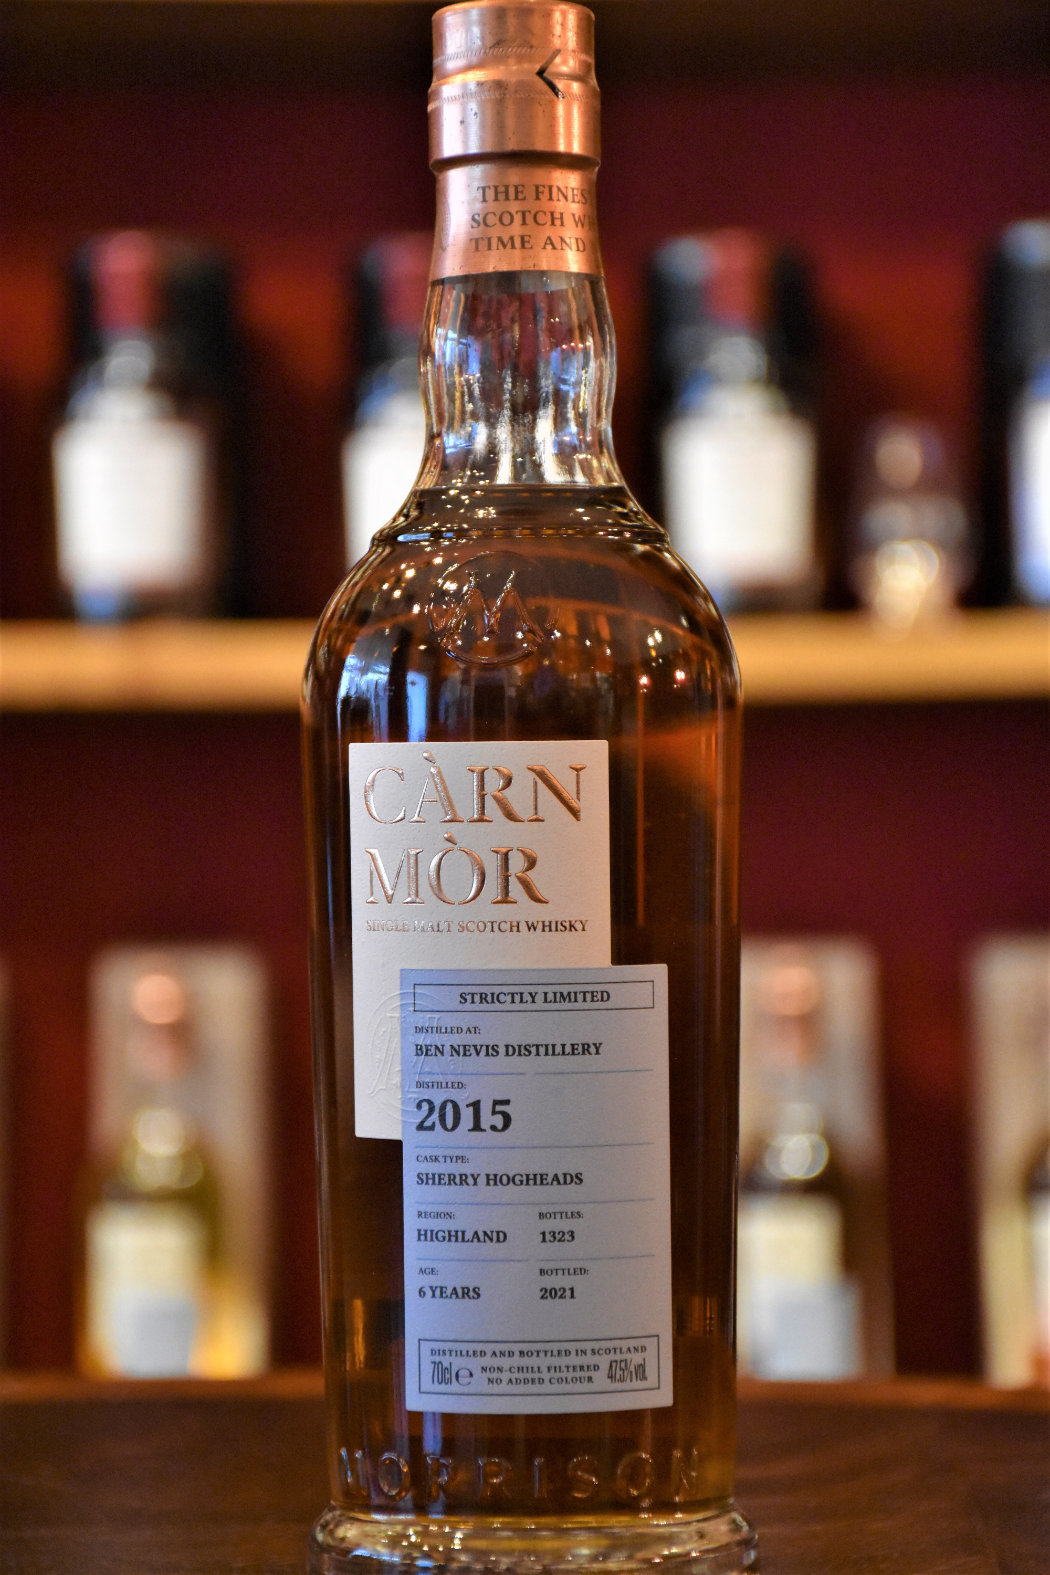 Ben Nevis 2015, Sherry Hogshead (Peated) - Strictly Limited Edition, 47,5% Alc.Vol., Carn Mor